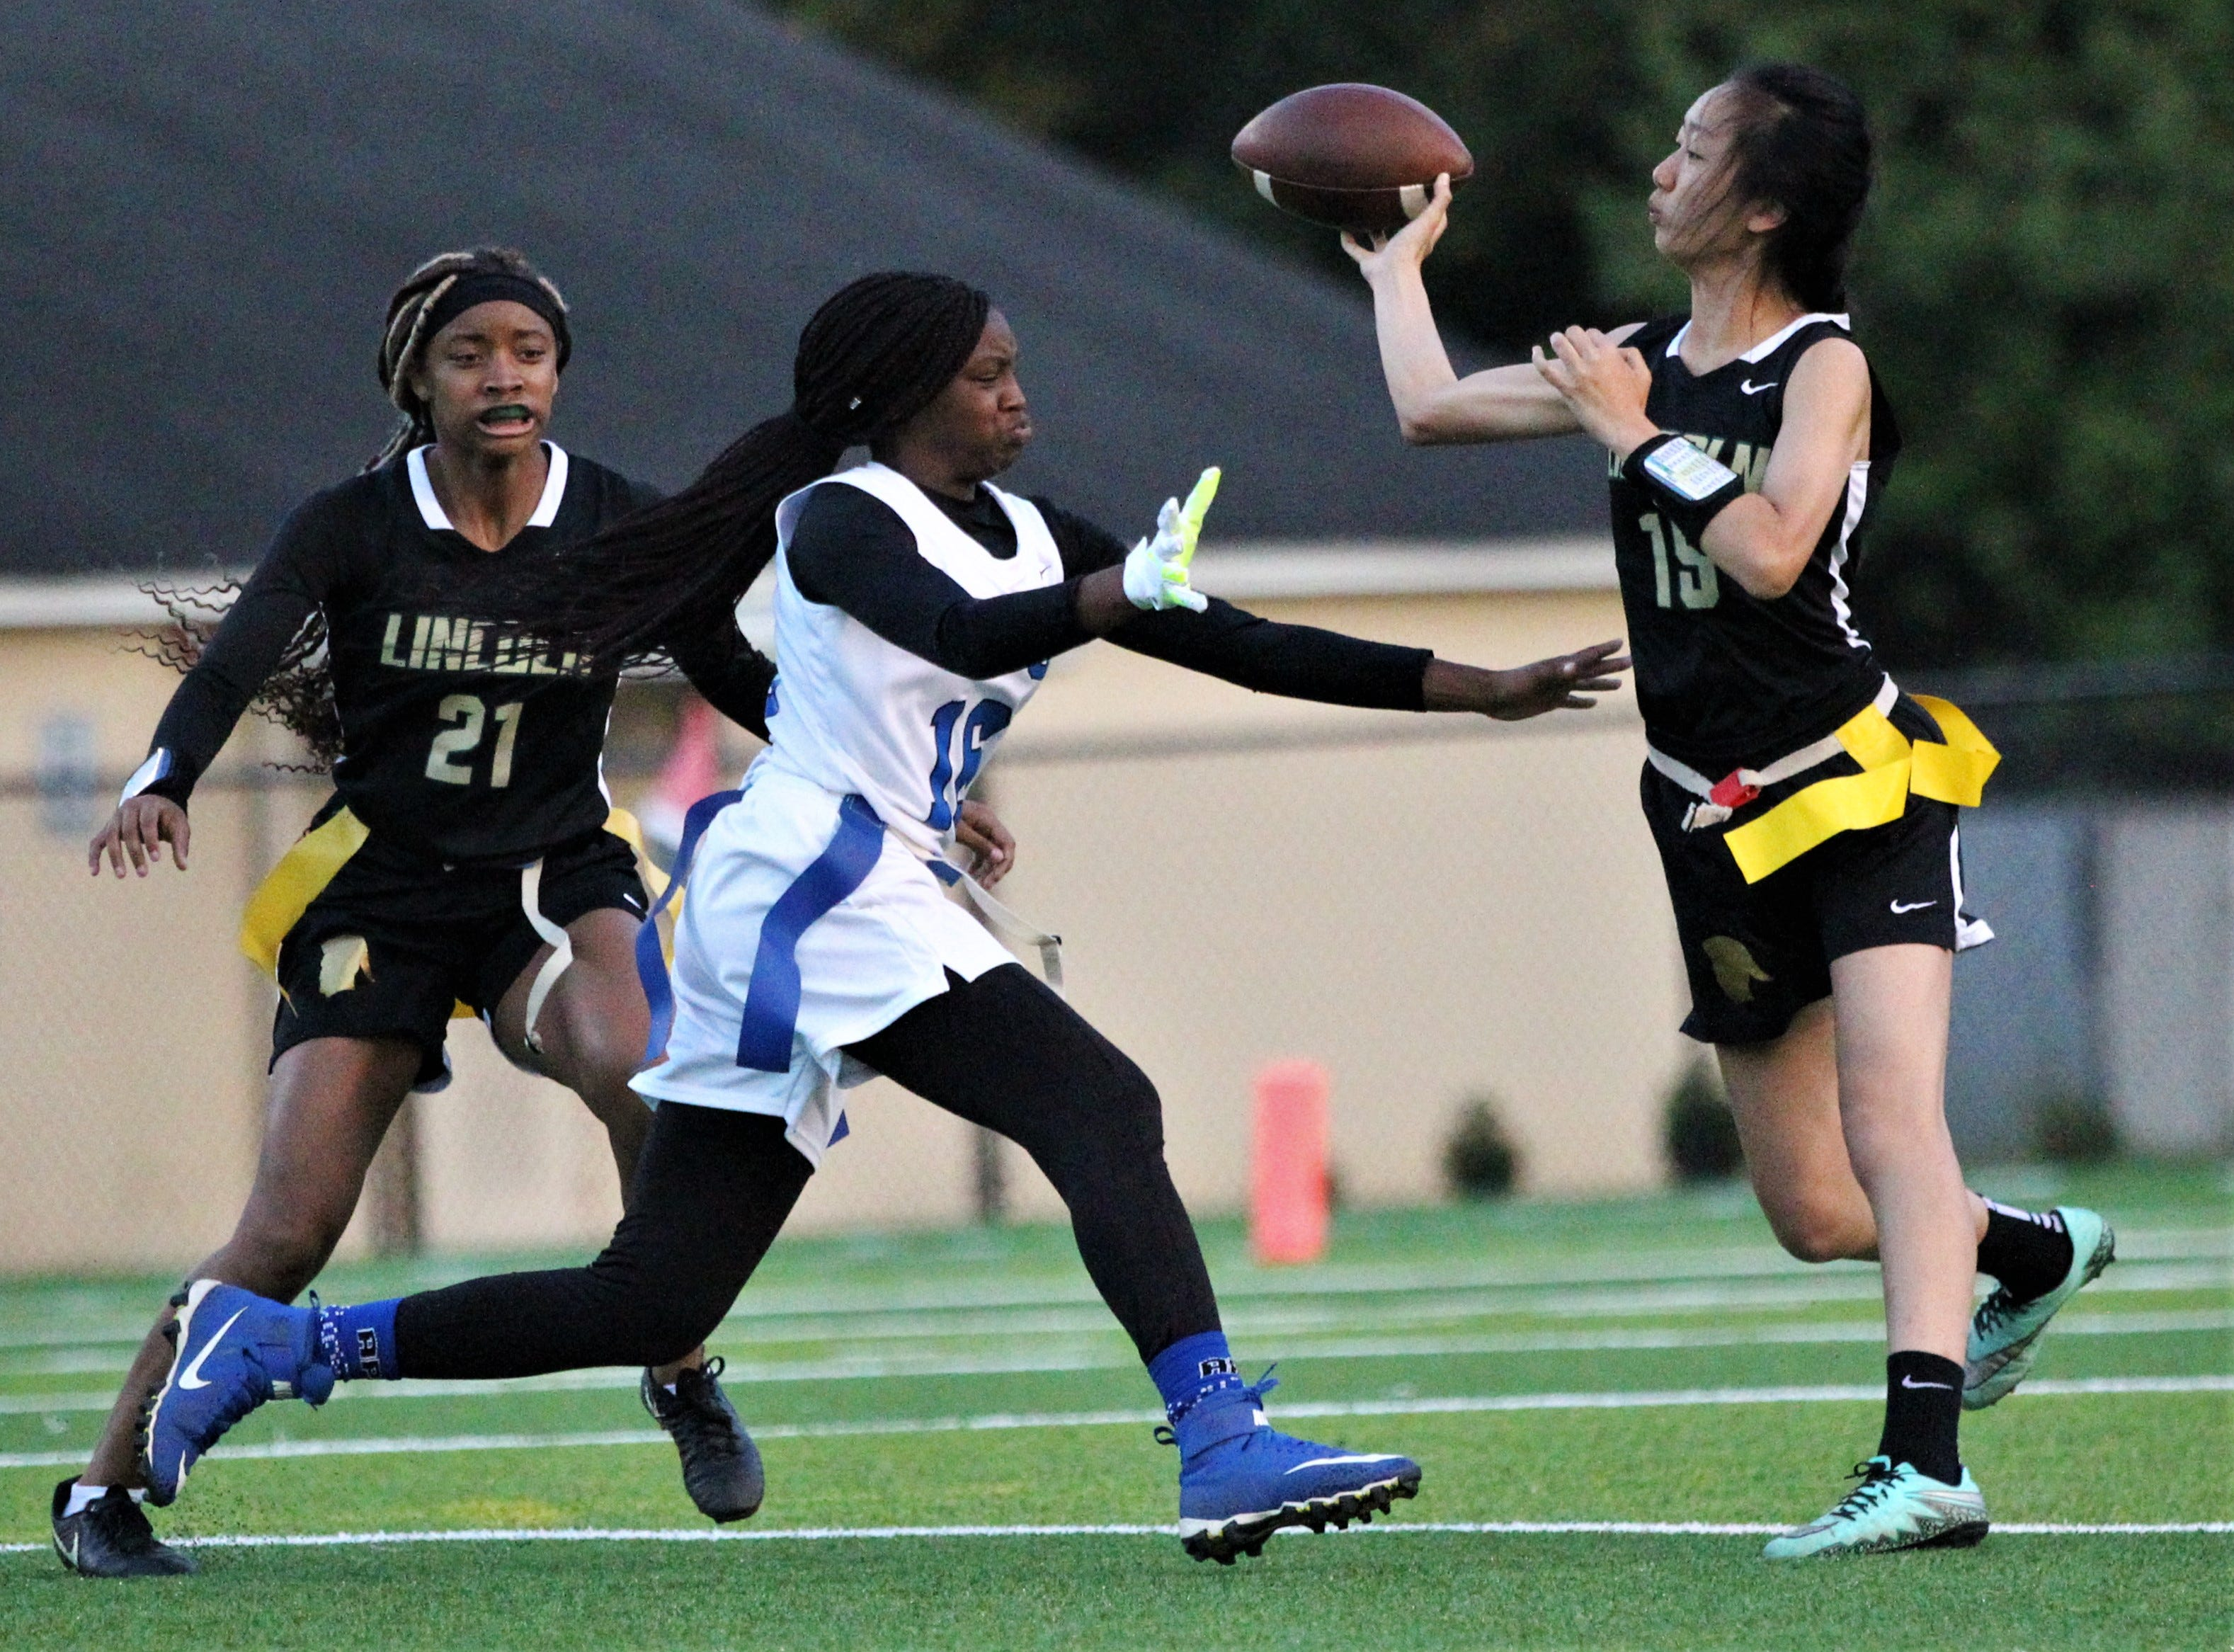 Lincoln quarterback Ivy Zheng throws a pass before Godby's Essence Nobles reaches her flags as the Cougars beat the Trojans 25-6 at Gene Cox Stadium on March 14, 2019.